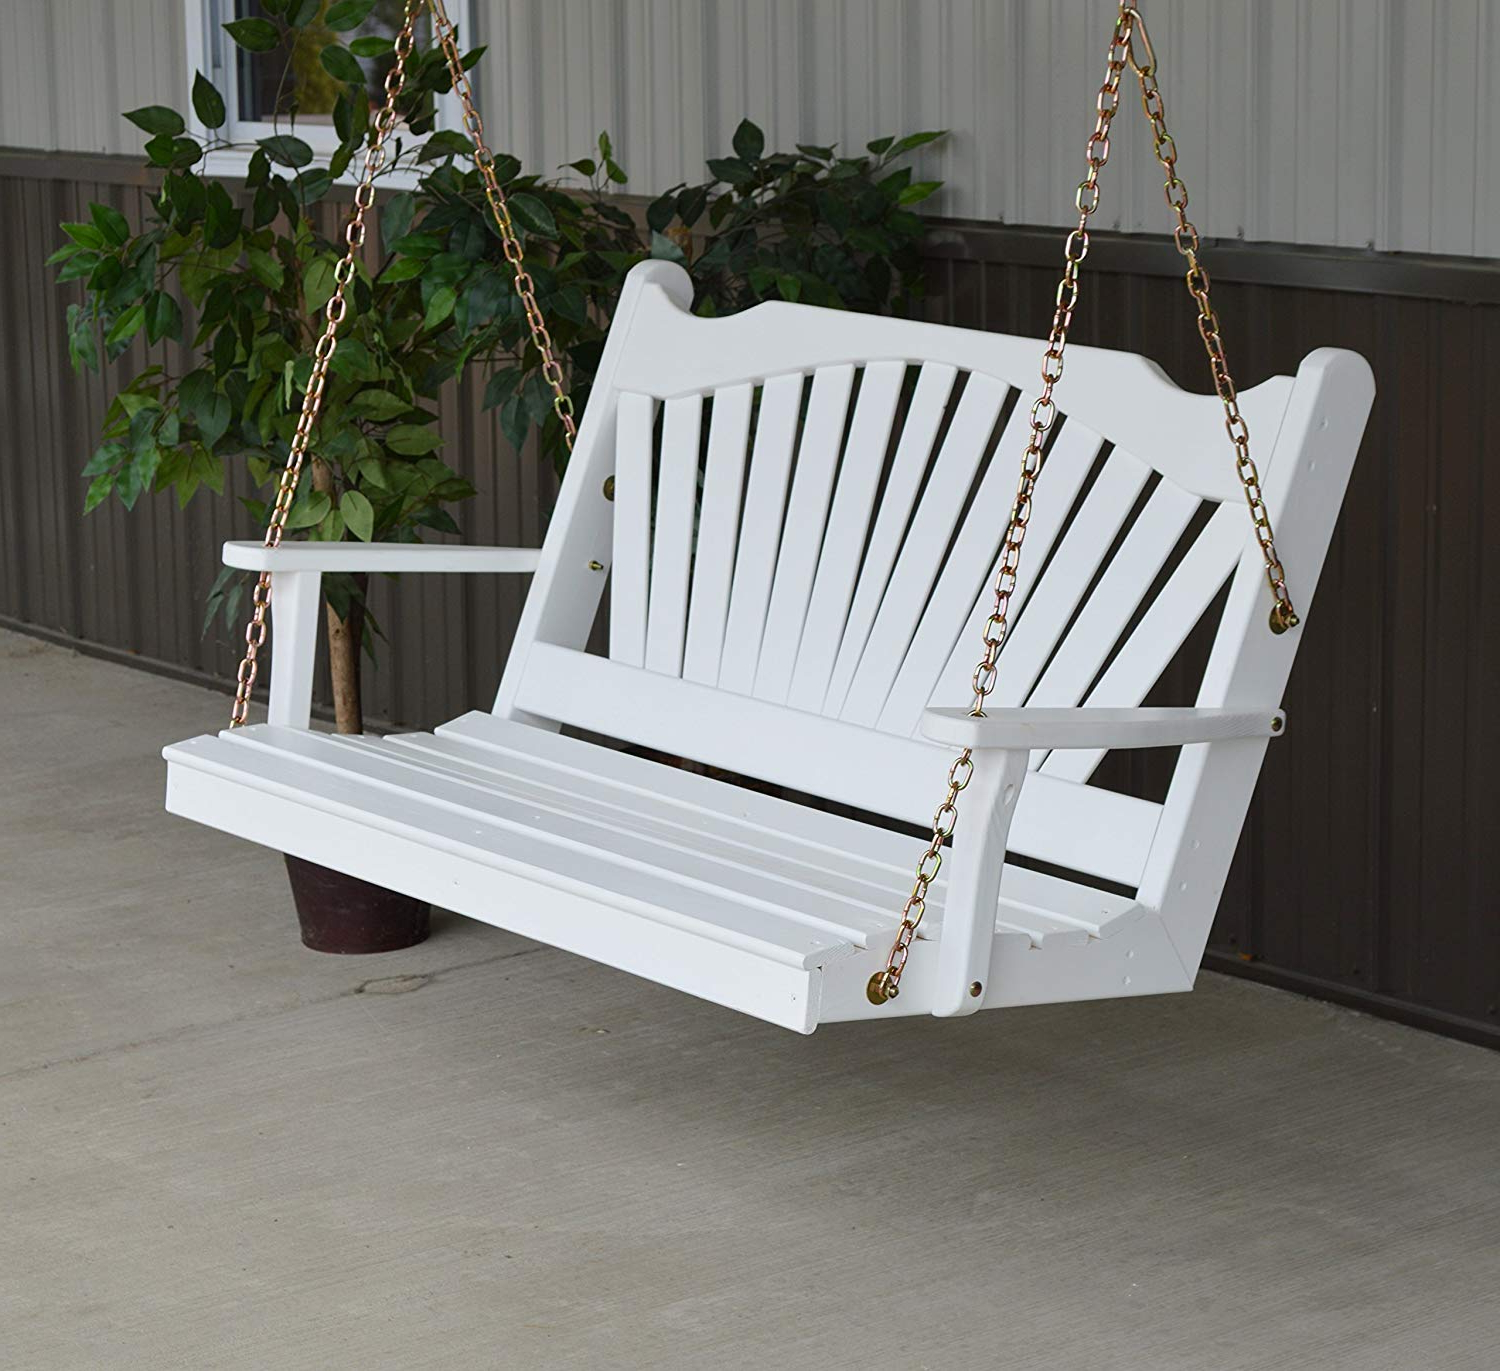 2 Person White Wood Outdoor Swings With Regard To Well Known Aspen Tree Interiors Wood Porch Swing, 2 Person Swings Patio Front Porches, Usa Amish Made Outdoor Furniture, Fun Swinging Bench Outside Furnishings – (View 11 of 30)